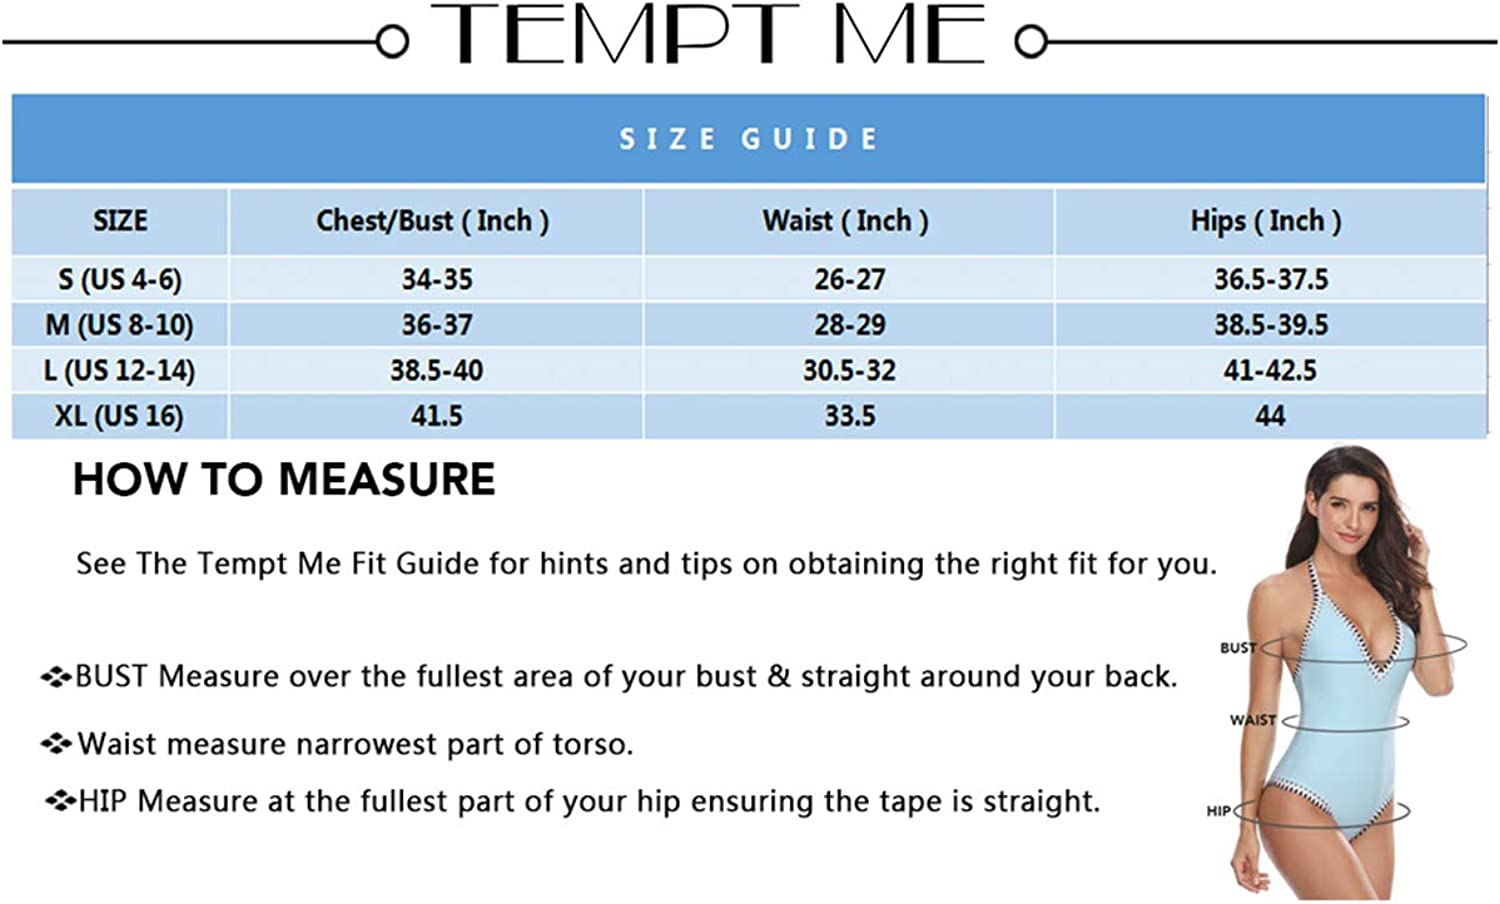 Tempt Me Tankini Swimsuit for Women High Neck Ruched Tummy Control Top with Shorts Two Piece Bathing Suits